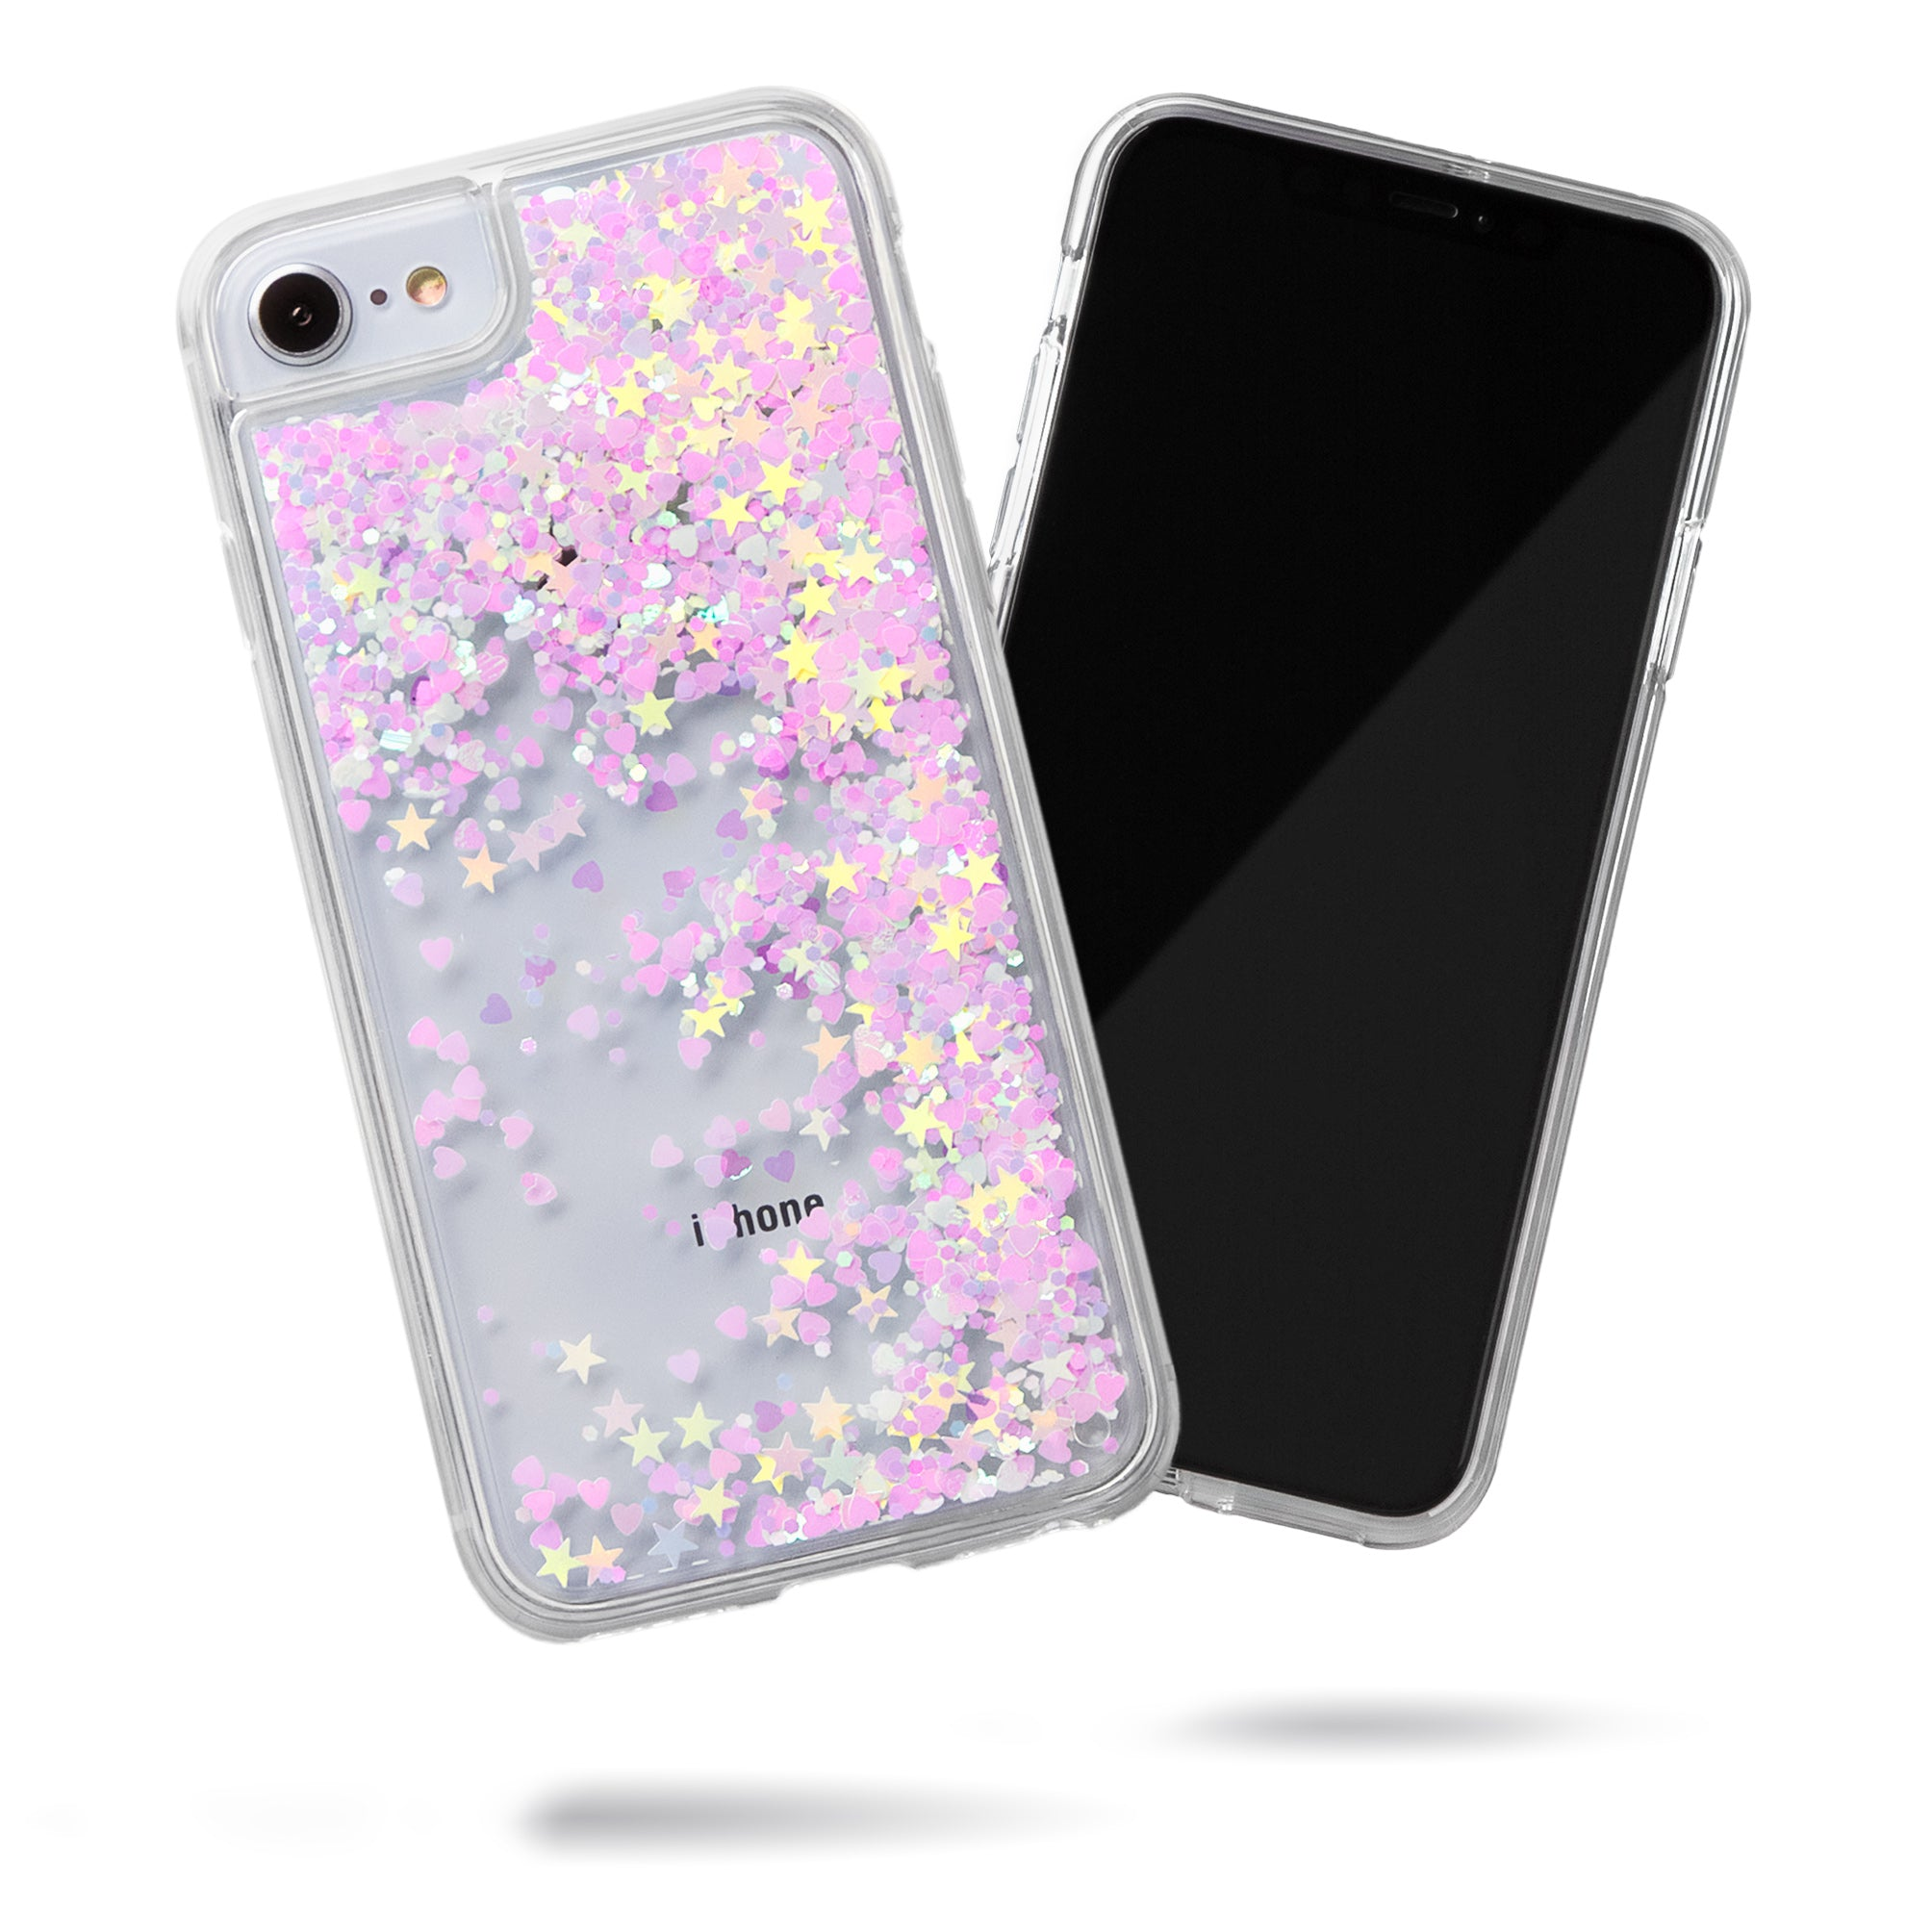 Glitter Liquid Case for iPhone SE, iPhone 8 & iPhone 7 - Pink Chameleon Confetti